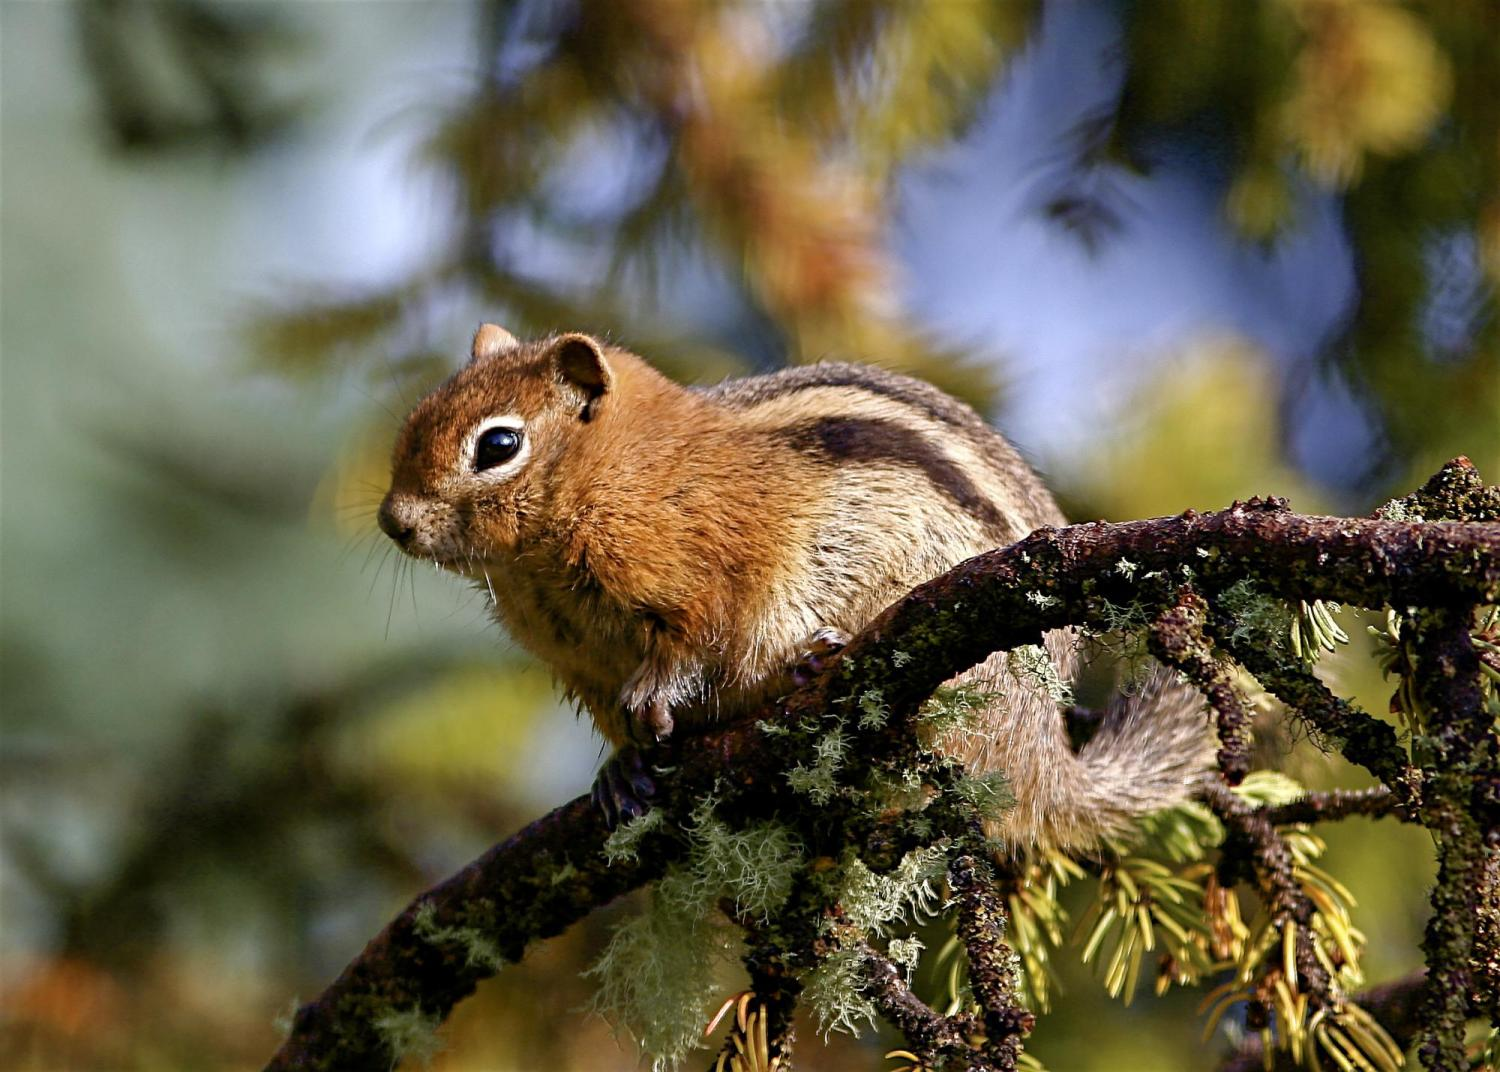 Golden-mantled ground squirrels sound an alarm call that warns not only squirrels but marmots as well